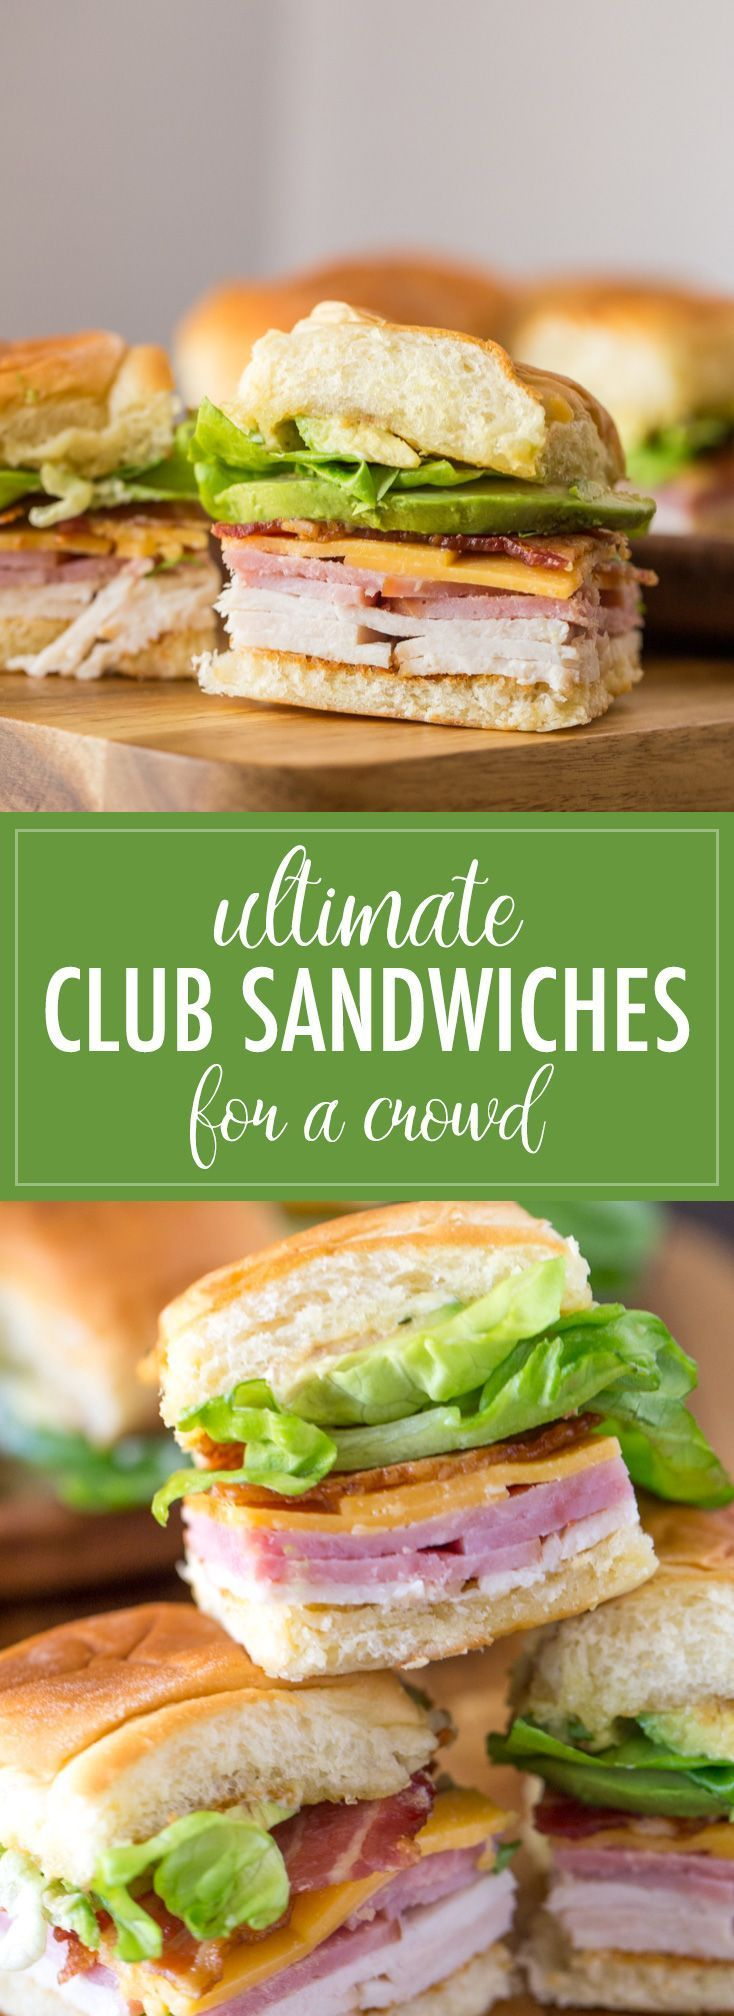 These Ultimate Club Sandwiches for a crowd come together quickly and everyone lo…